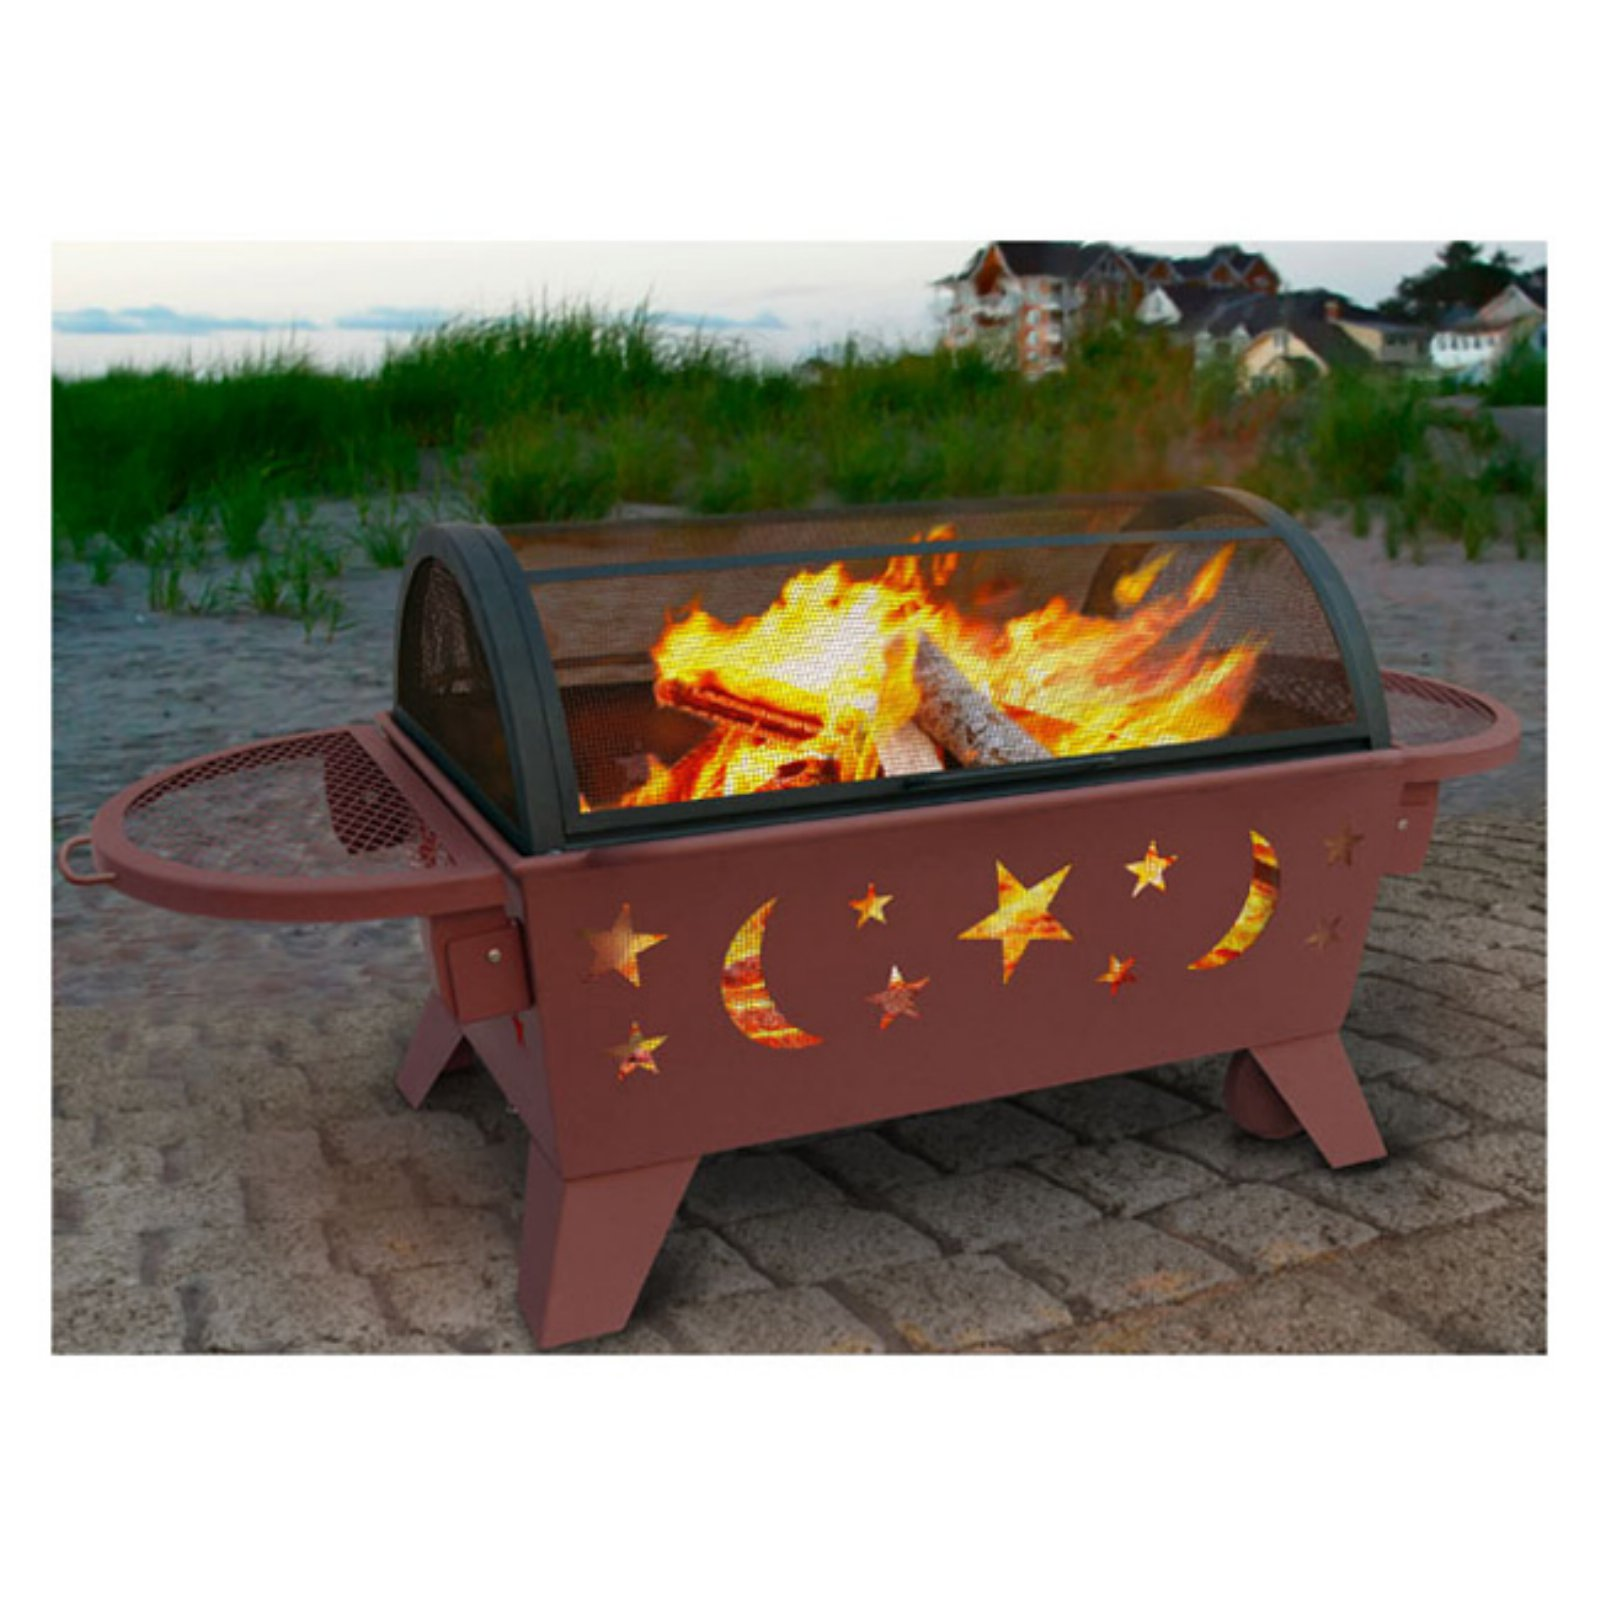 Landmann Northern Lights Outdoor Fireplace, Stars and Moon, Georgia Clay by Generic